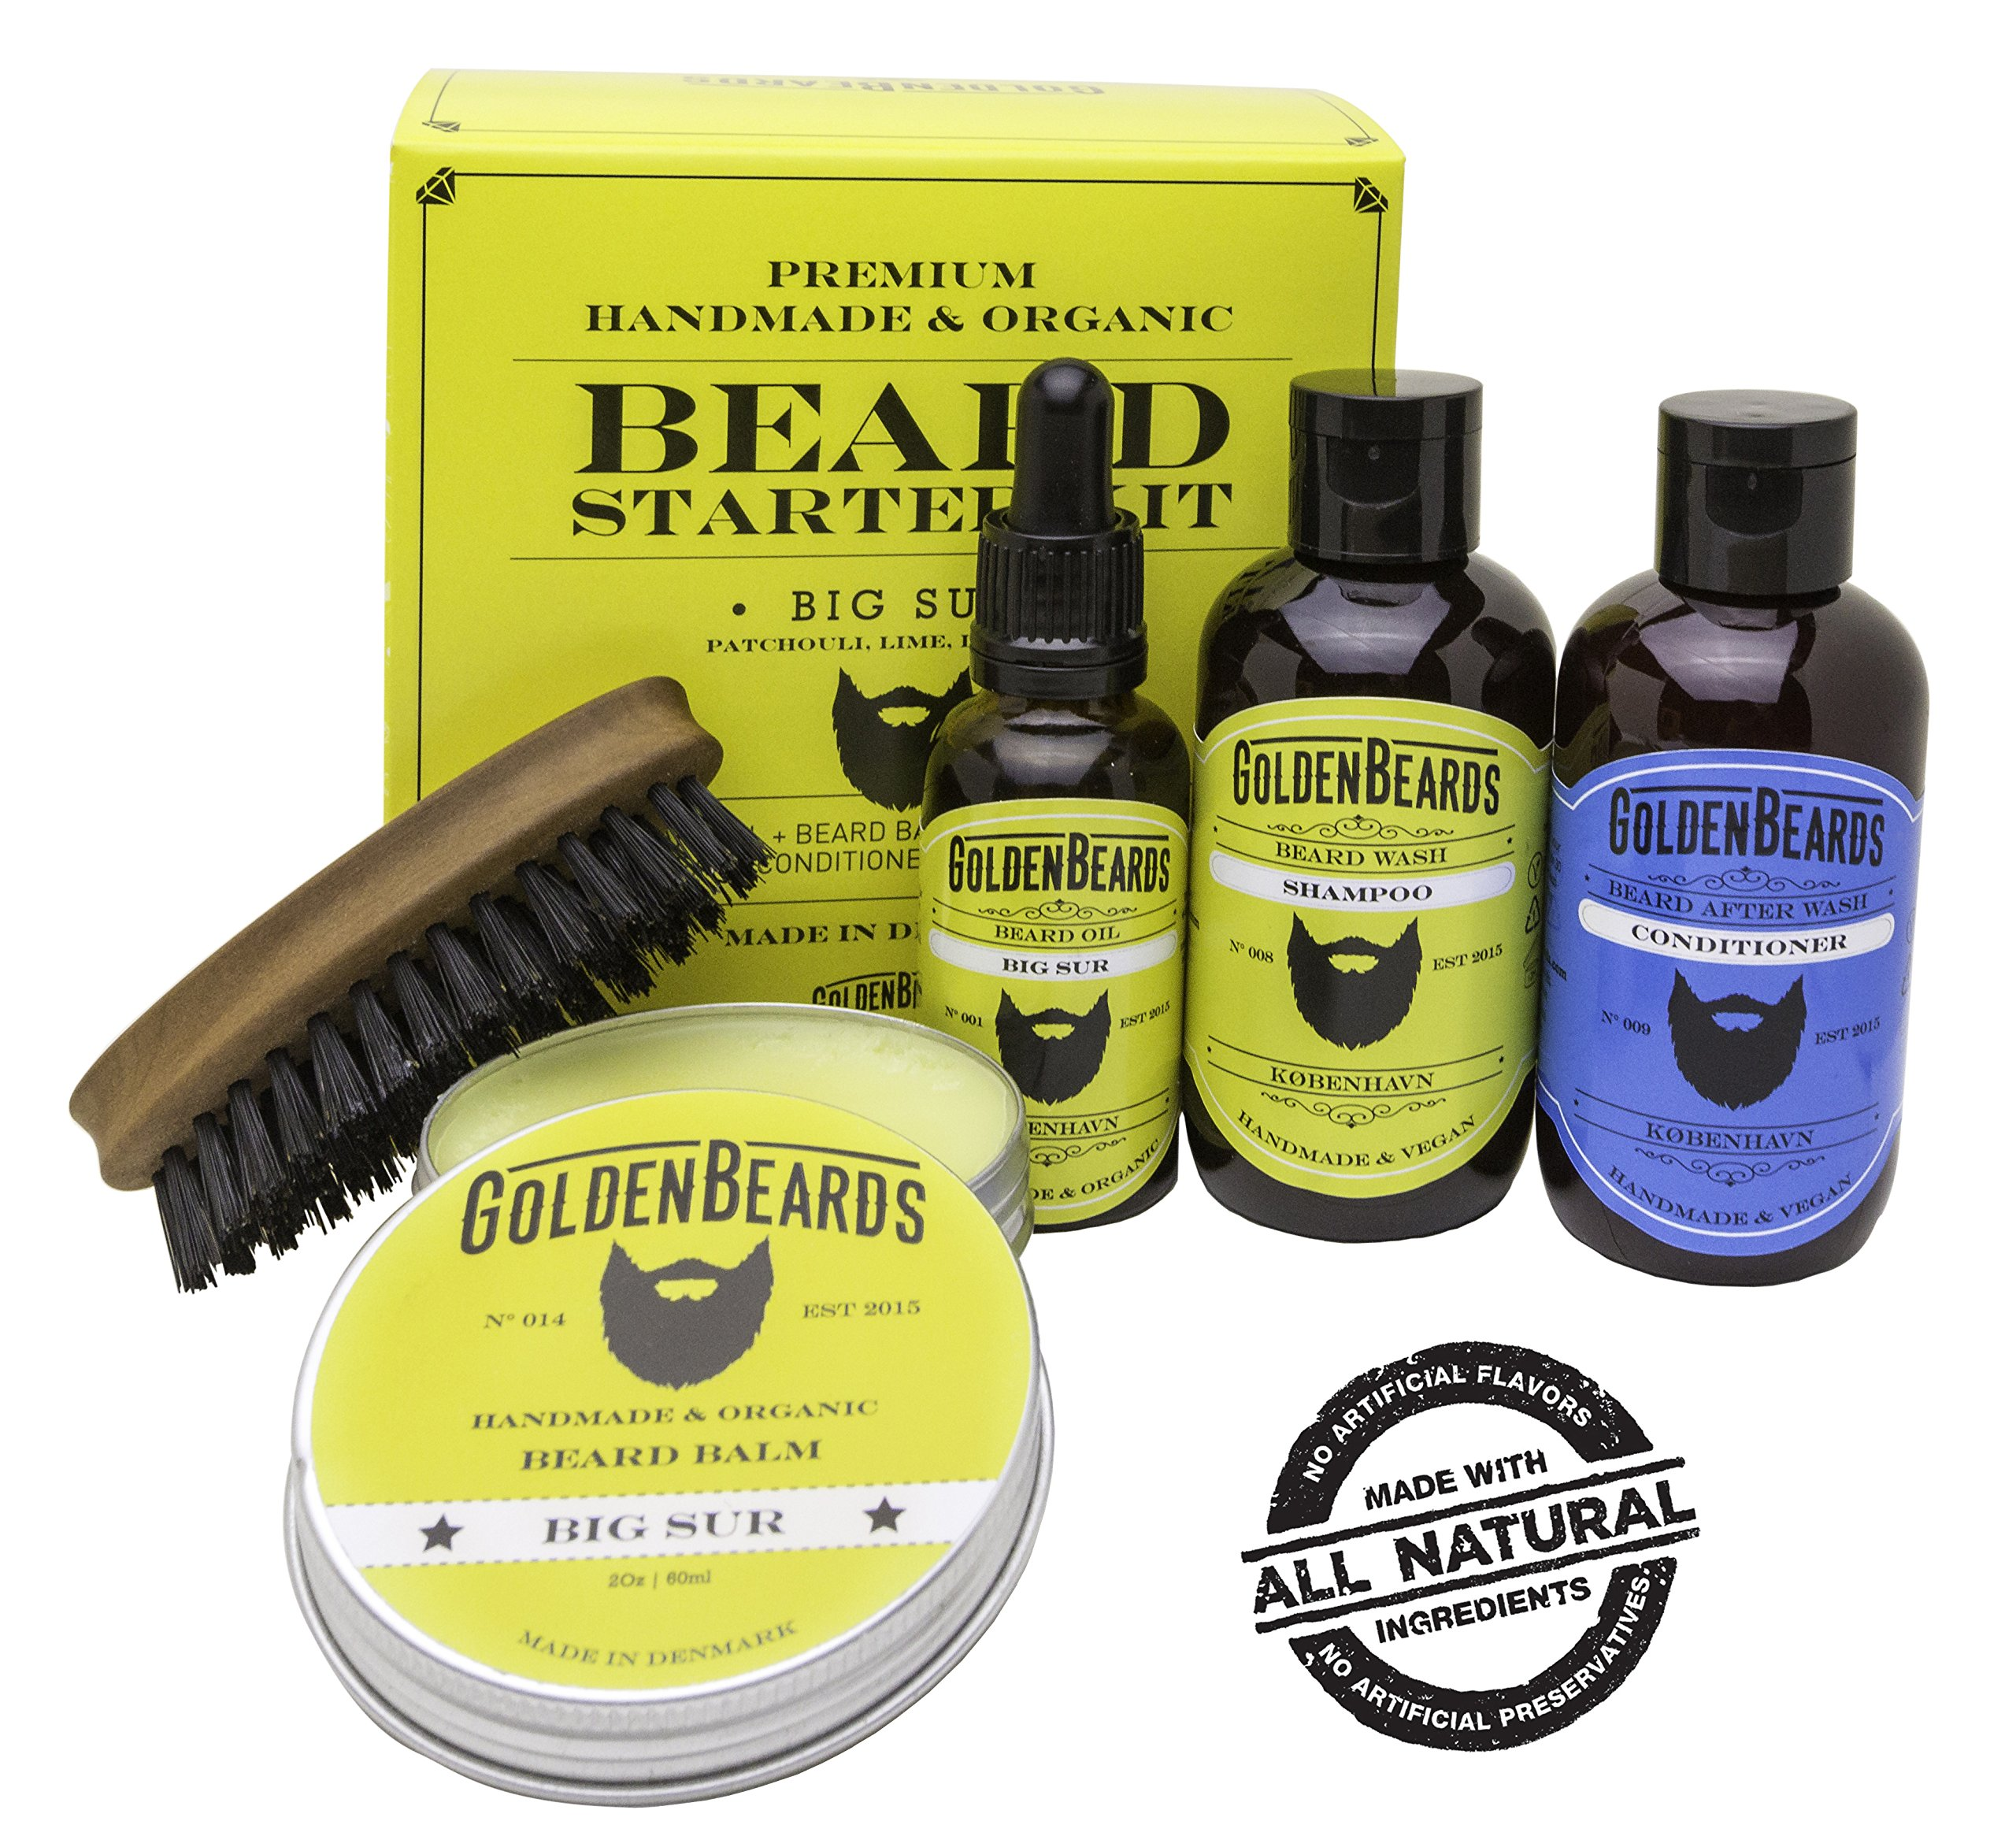 Beard Set Boxed - Organic beard kit for men gift - Beard balm kit for men gift - Organic beard oil and balm beard grooming kit organic beard oil and comb kit - Big Sur Golden Beards